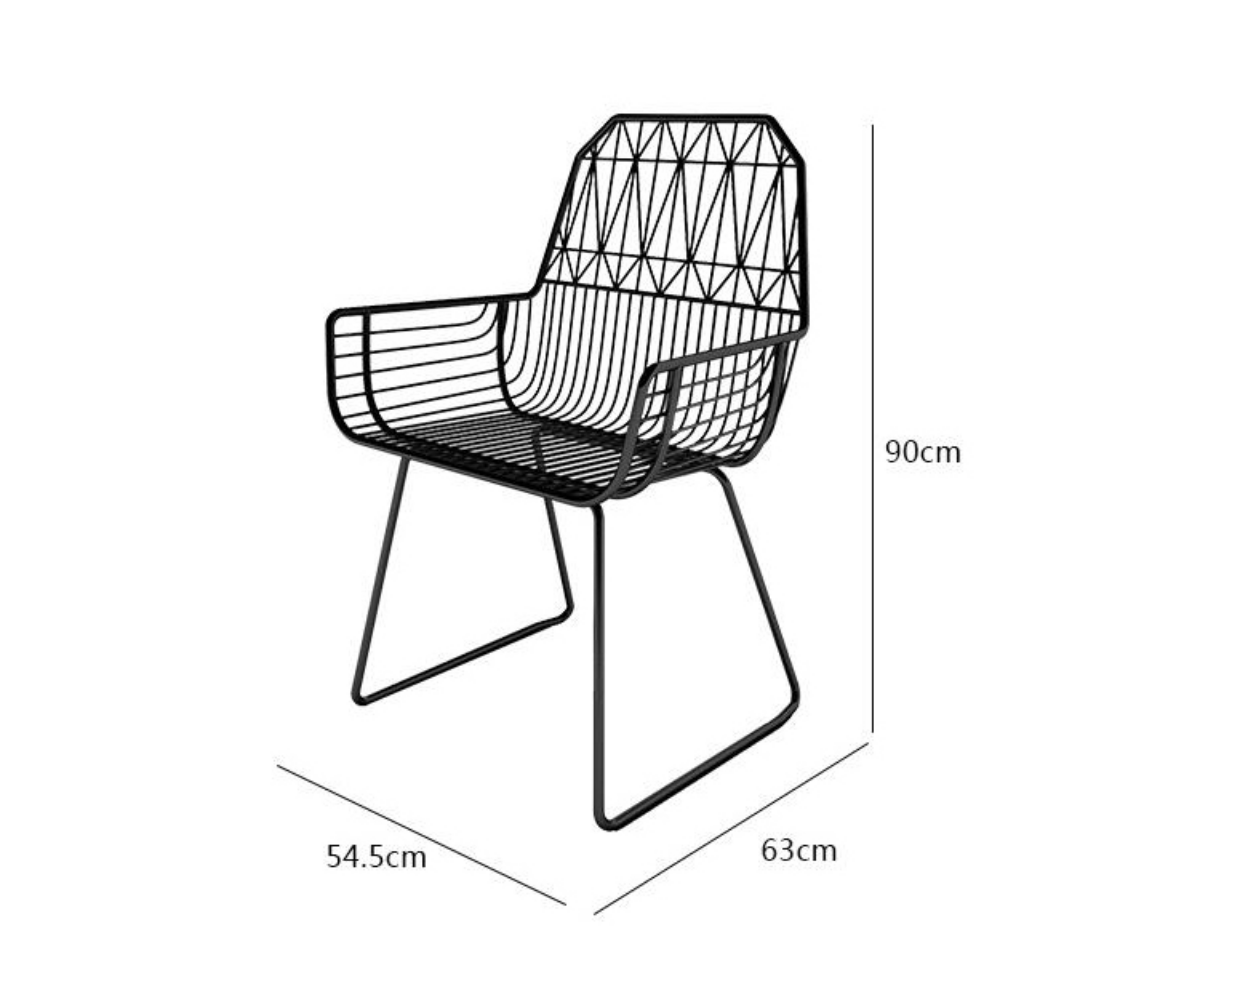 Metal Wire Chair Dimensions